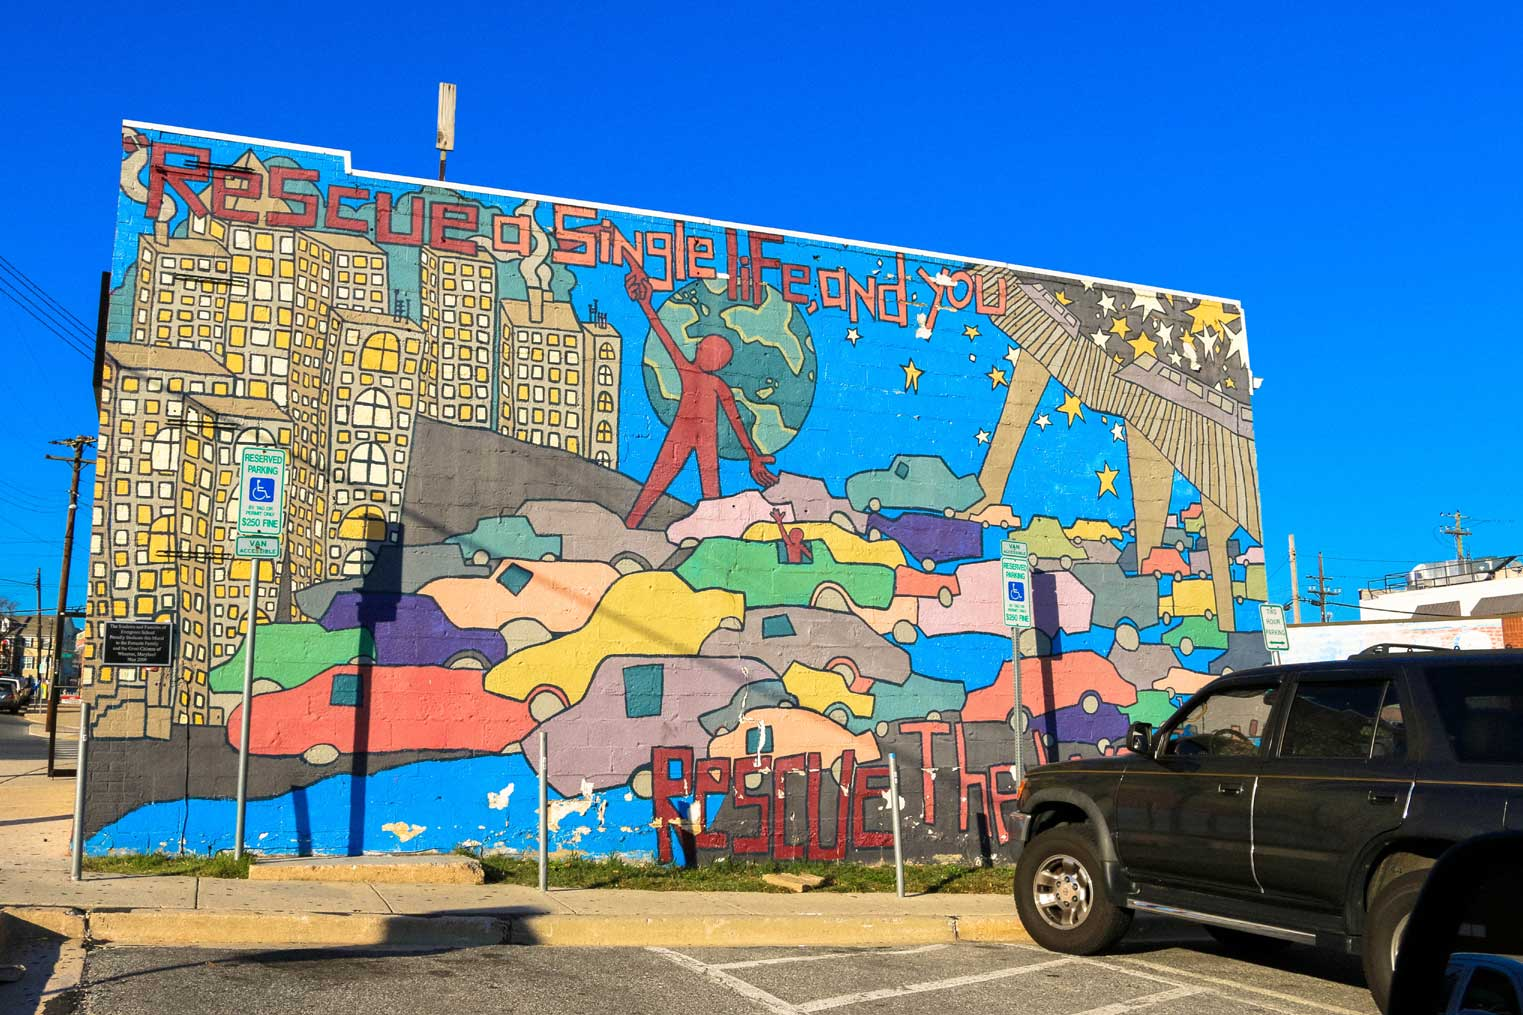 Building with mural in Wheaton, MD